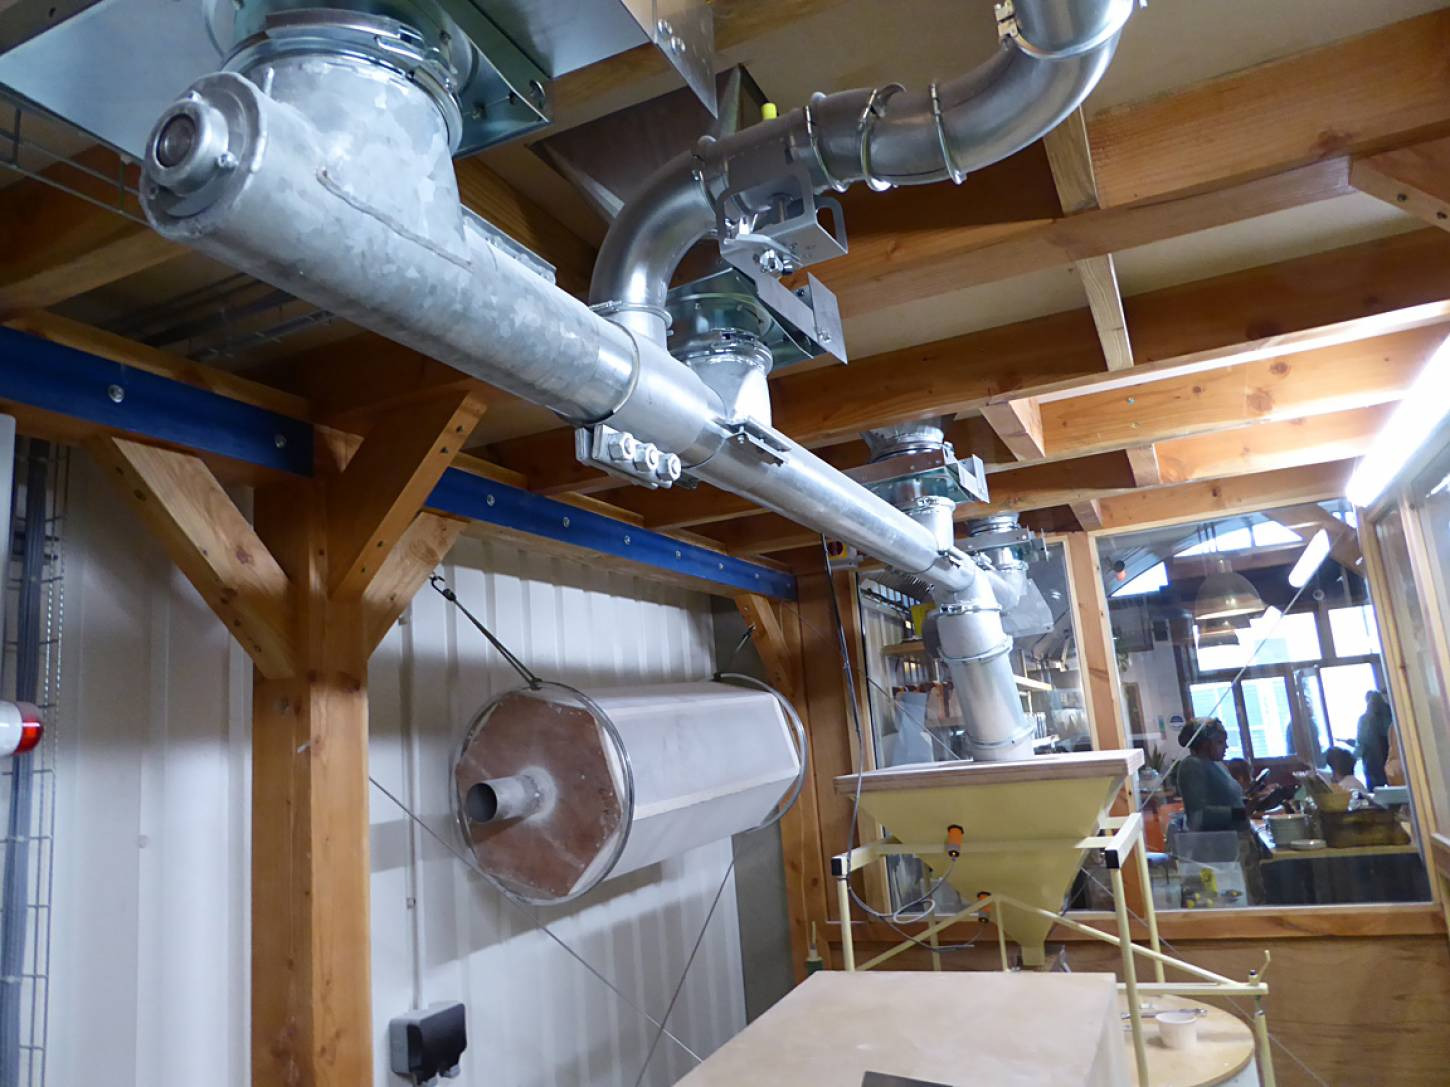 latest mill set up with multiple silo feeds at <a href='http://e5bakehouse.com/' target='_blank'>E5 bakehouse</a> - 2:55pm&nbsp;9<sup>th</sup>&nbsp;Mar.&nbsp;'18